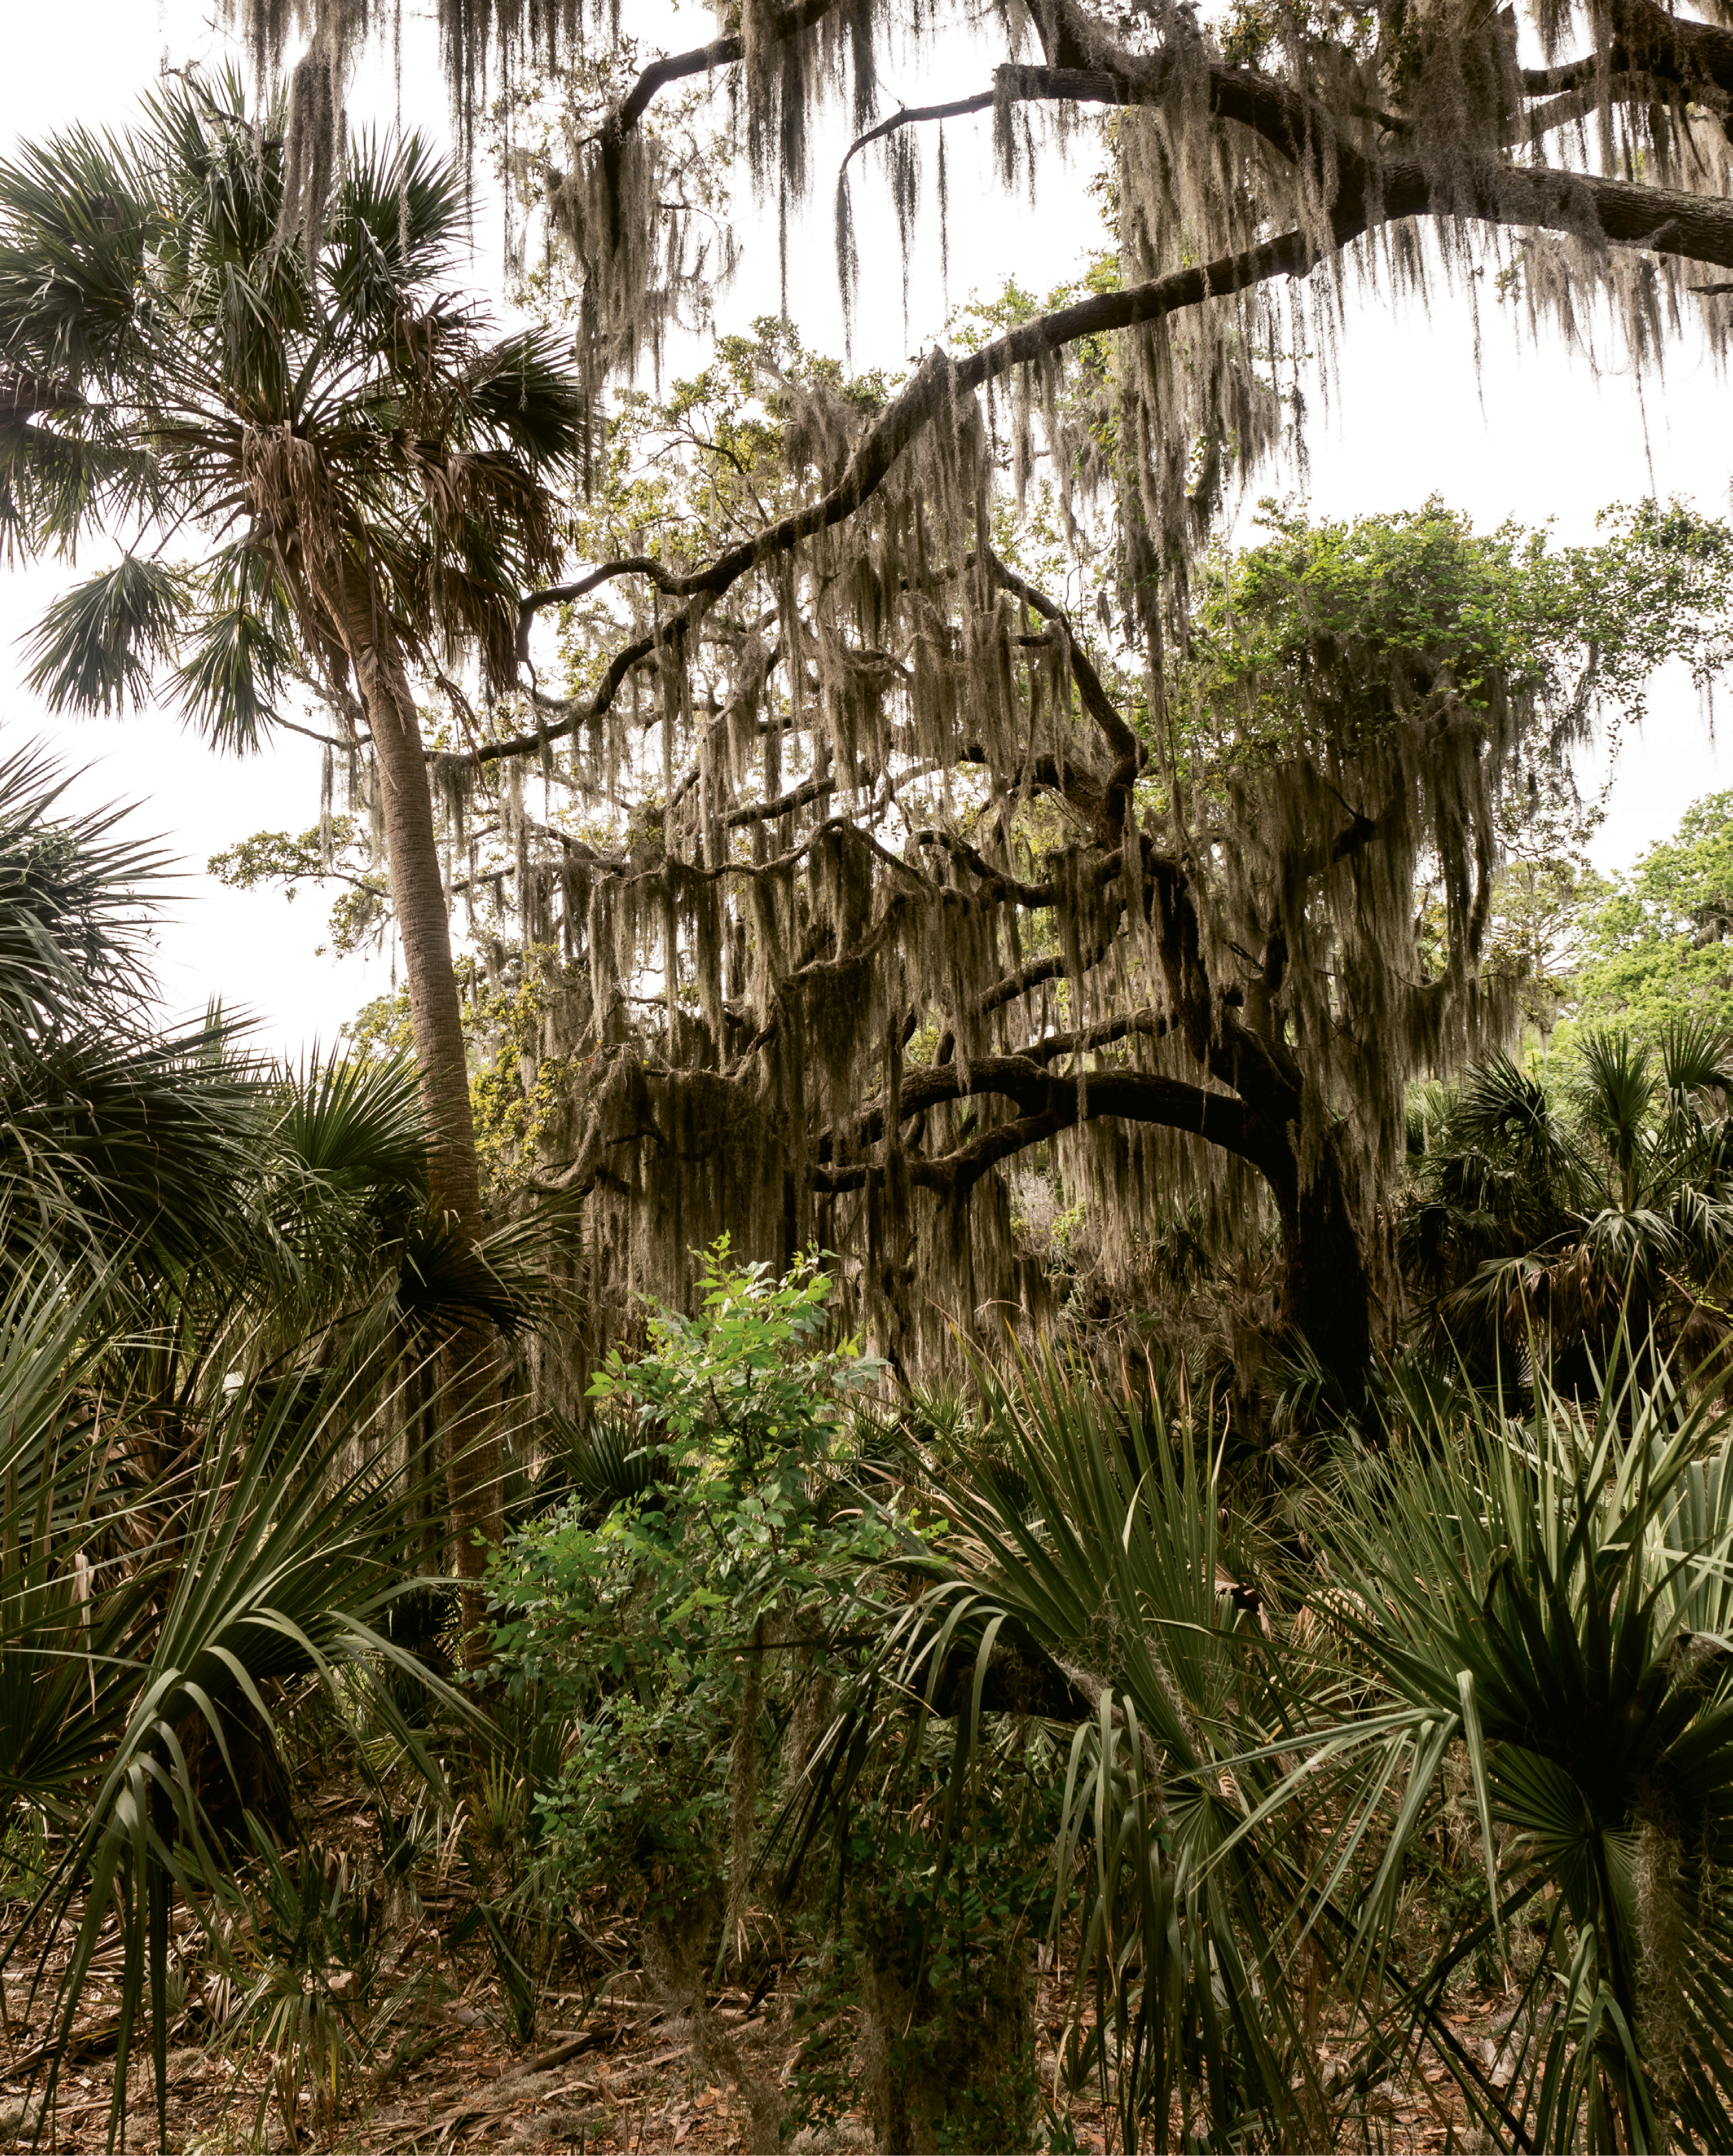 Spanish moss is thick in the maritime forest.